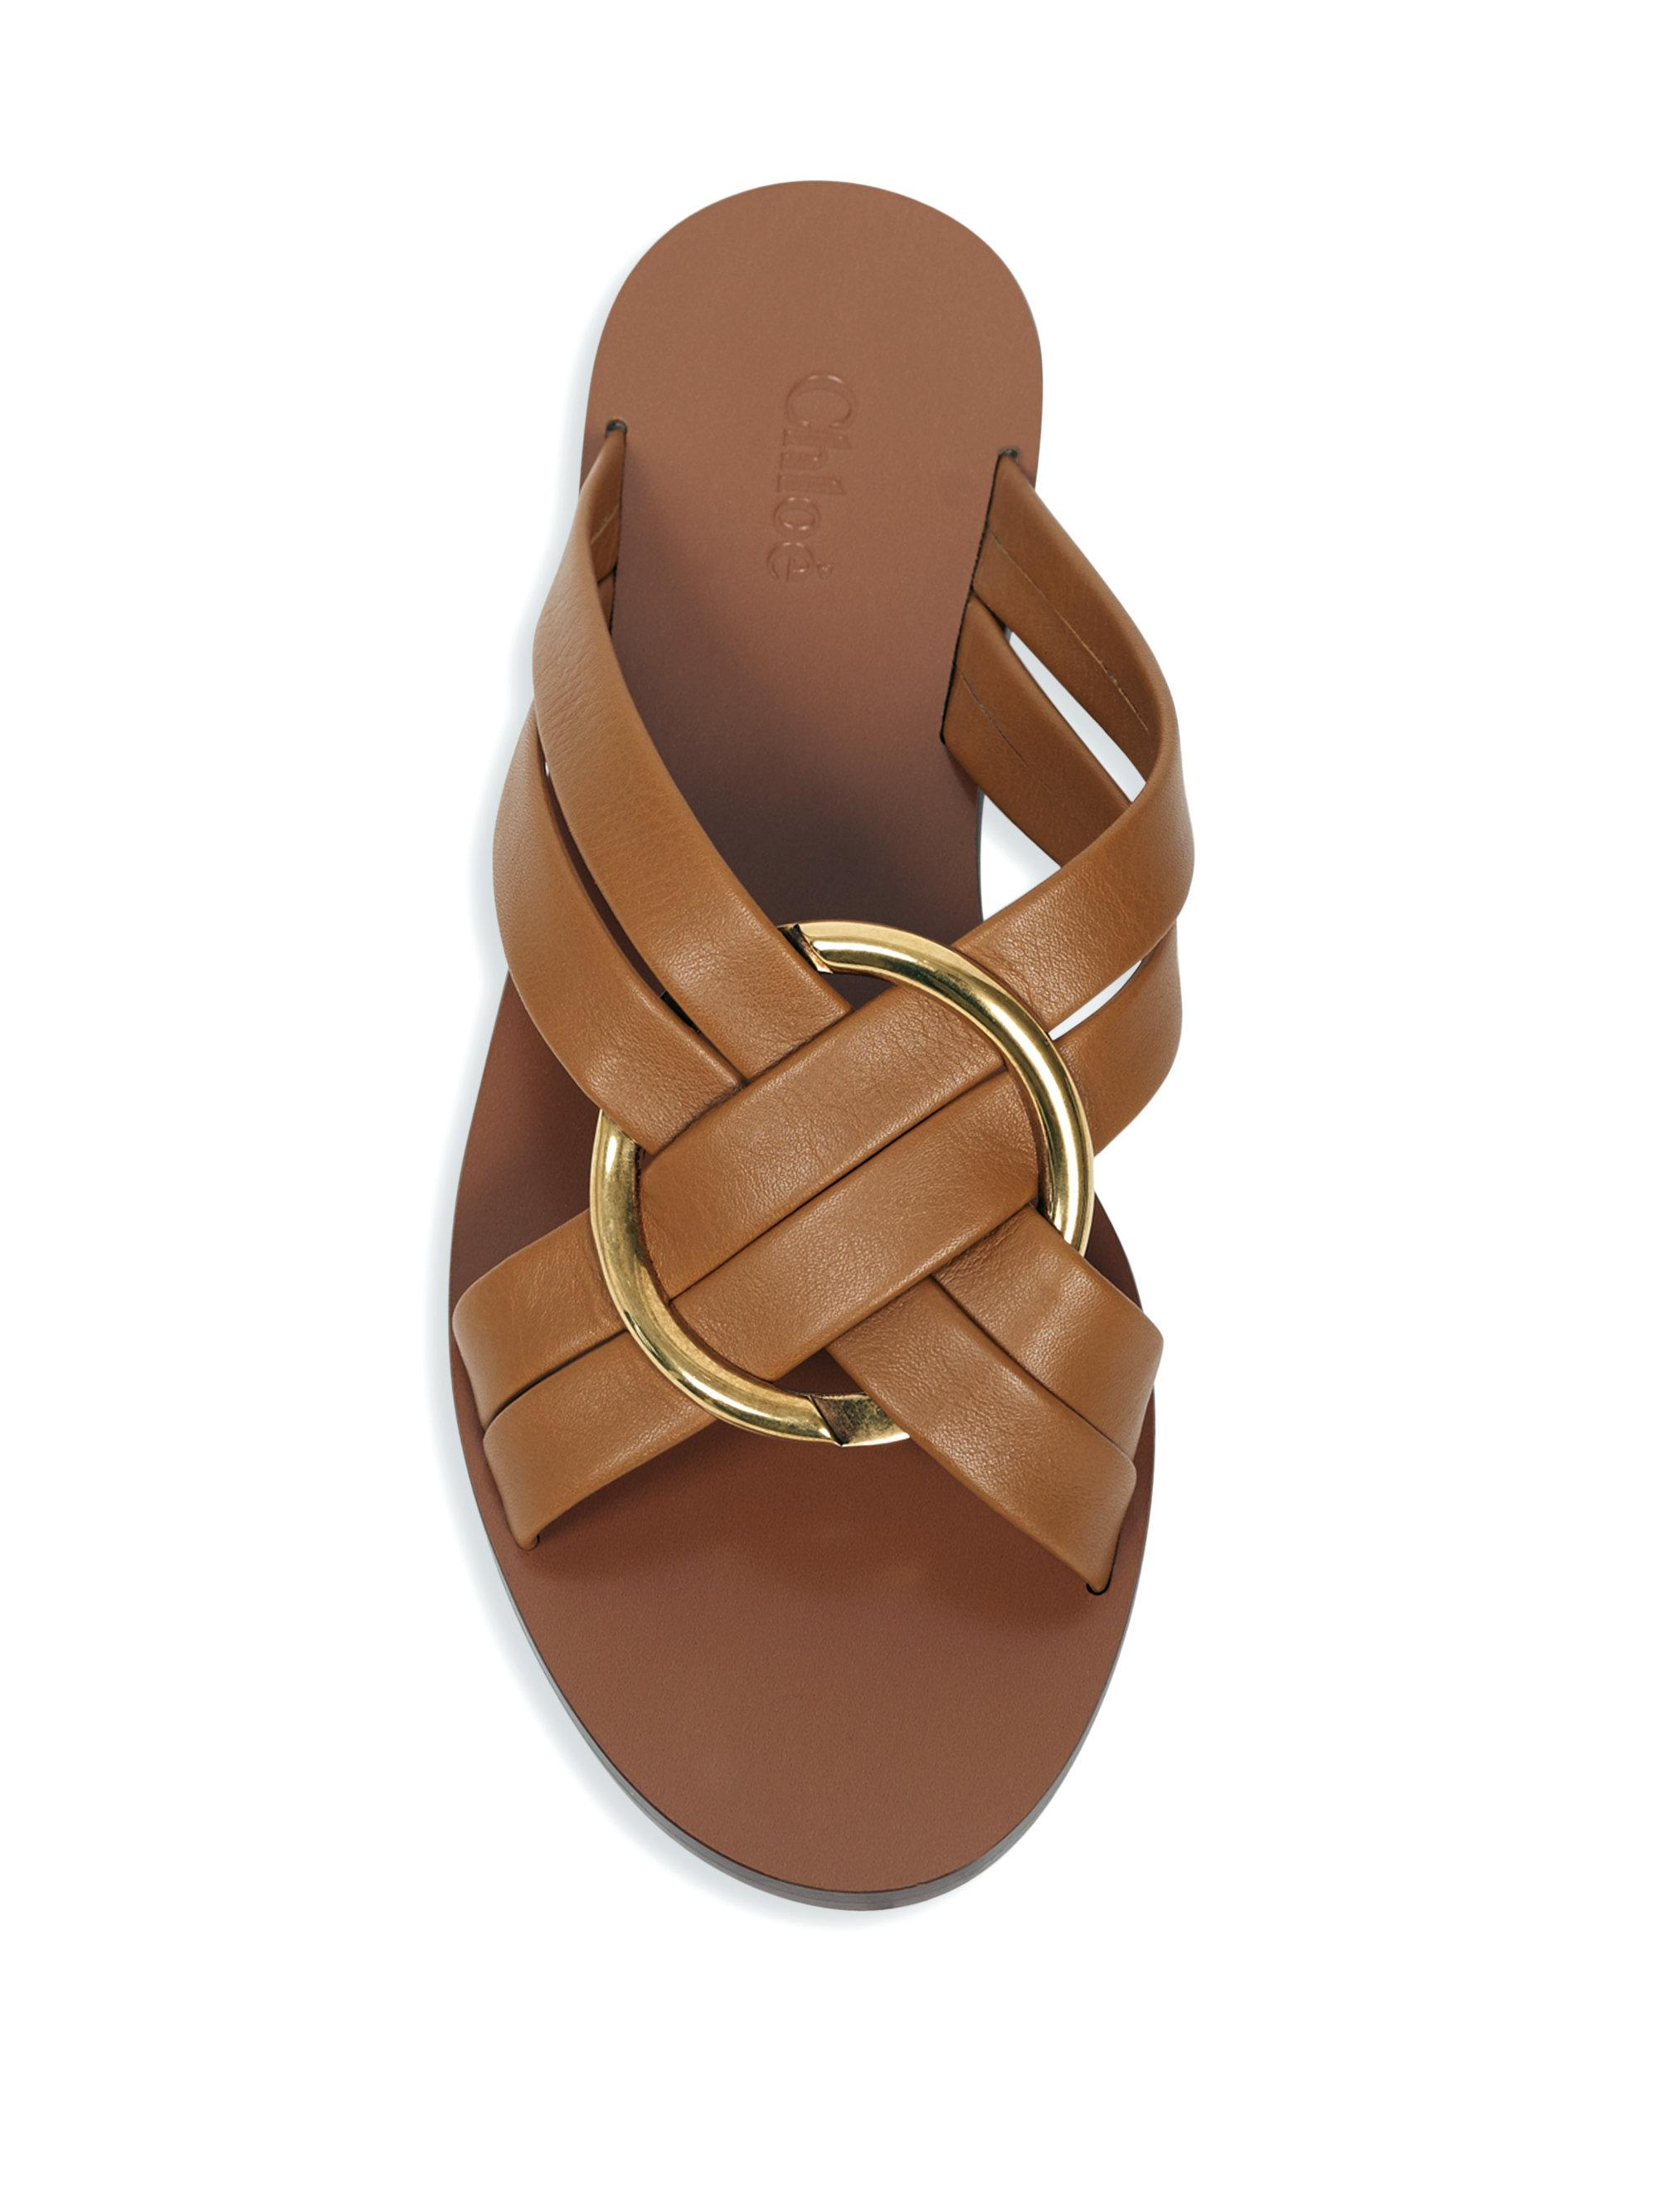 Chloé Rony flat sandals Outlet Manchester Great Sale Cheap Sale Release Dates GUc7lrgKWG